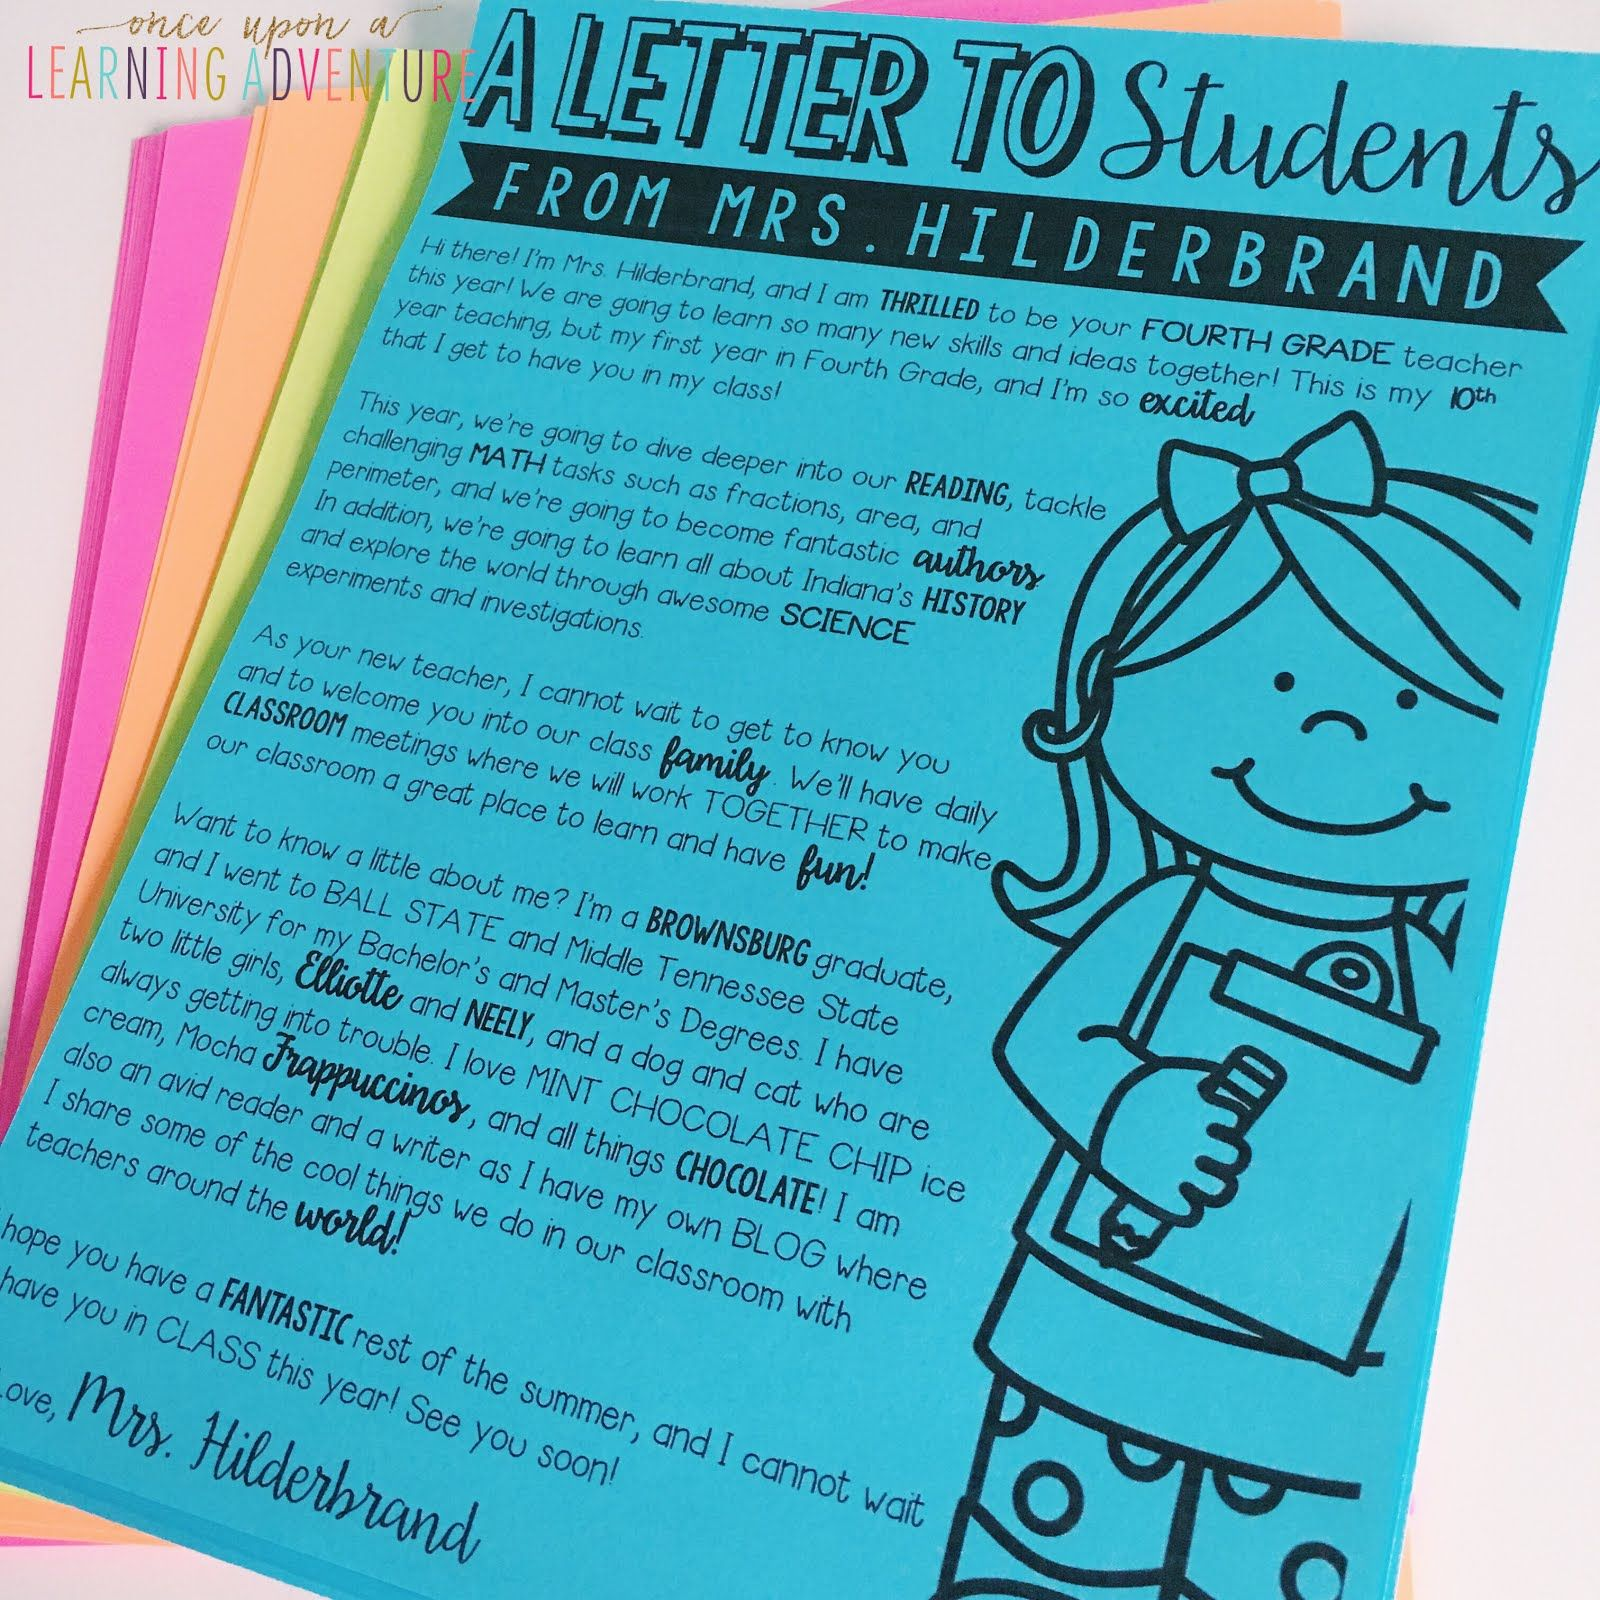 IMG_8059.JPG 1,600×1,600 pixels Letter to students